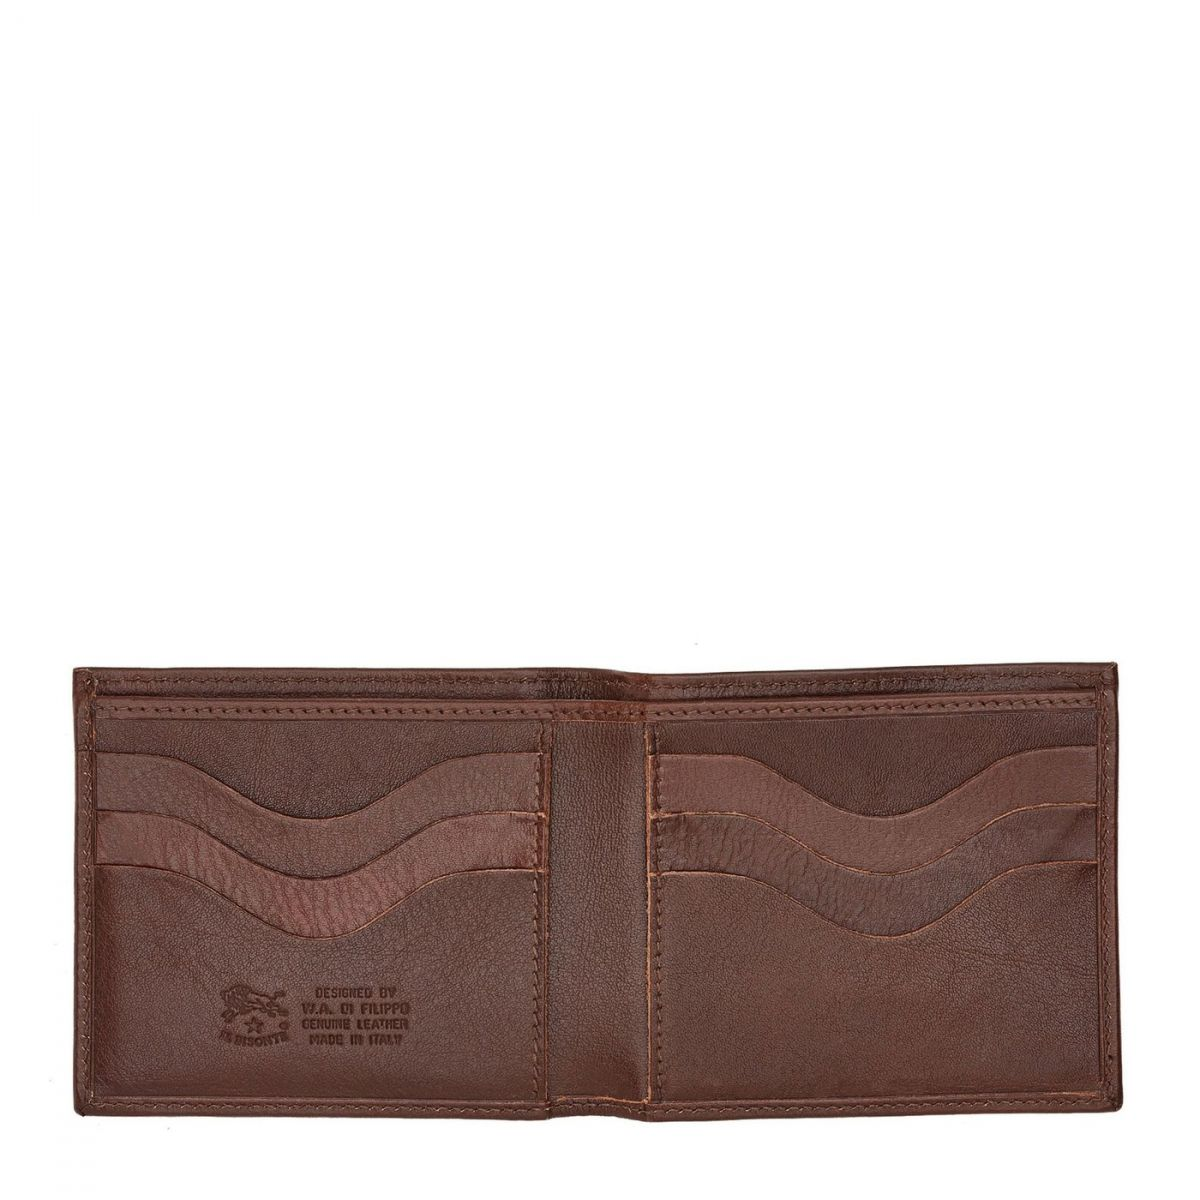 Men's Bi-Fold Wallet  in Cowhide Double Leather SBW005 color Brown | Details